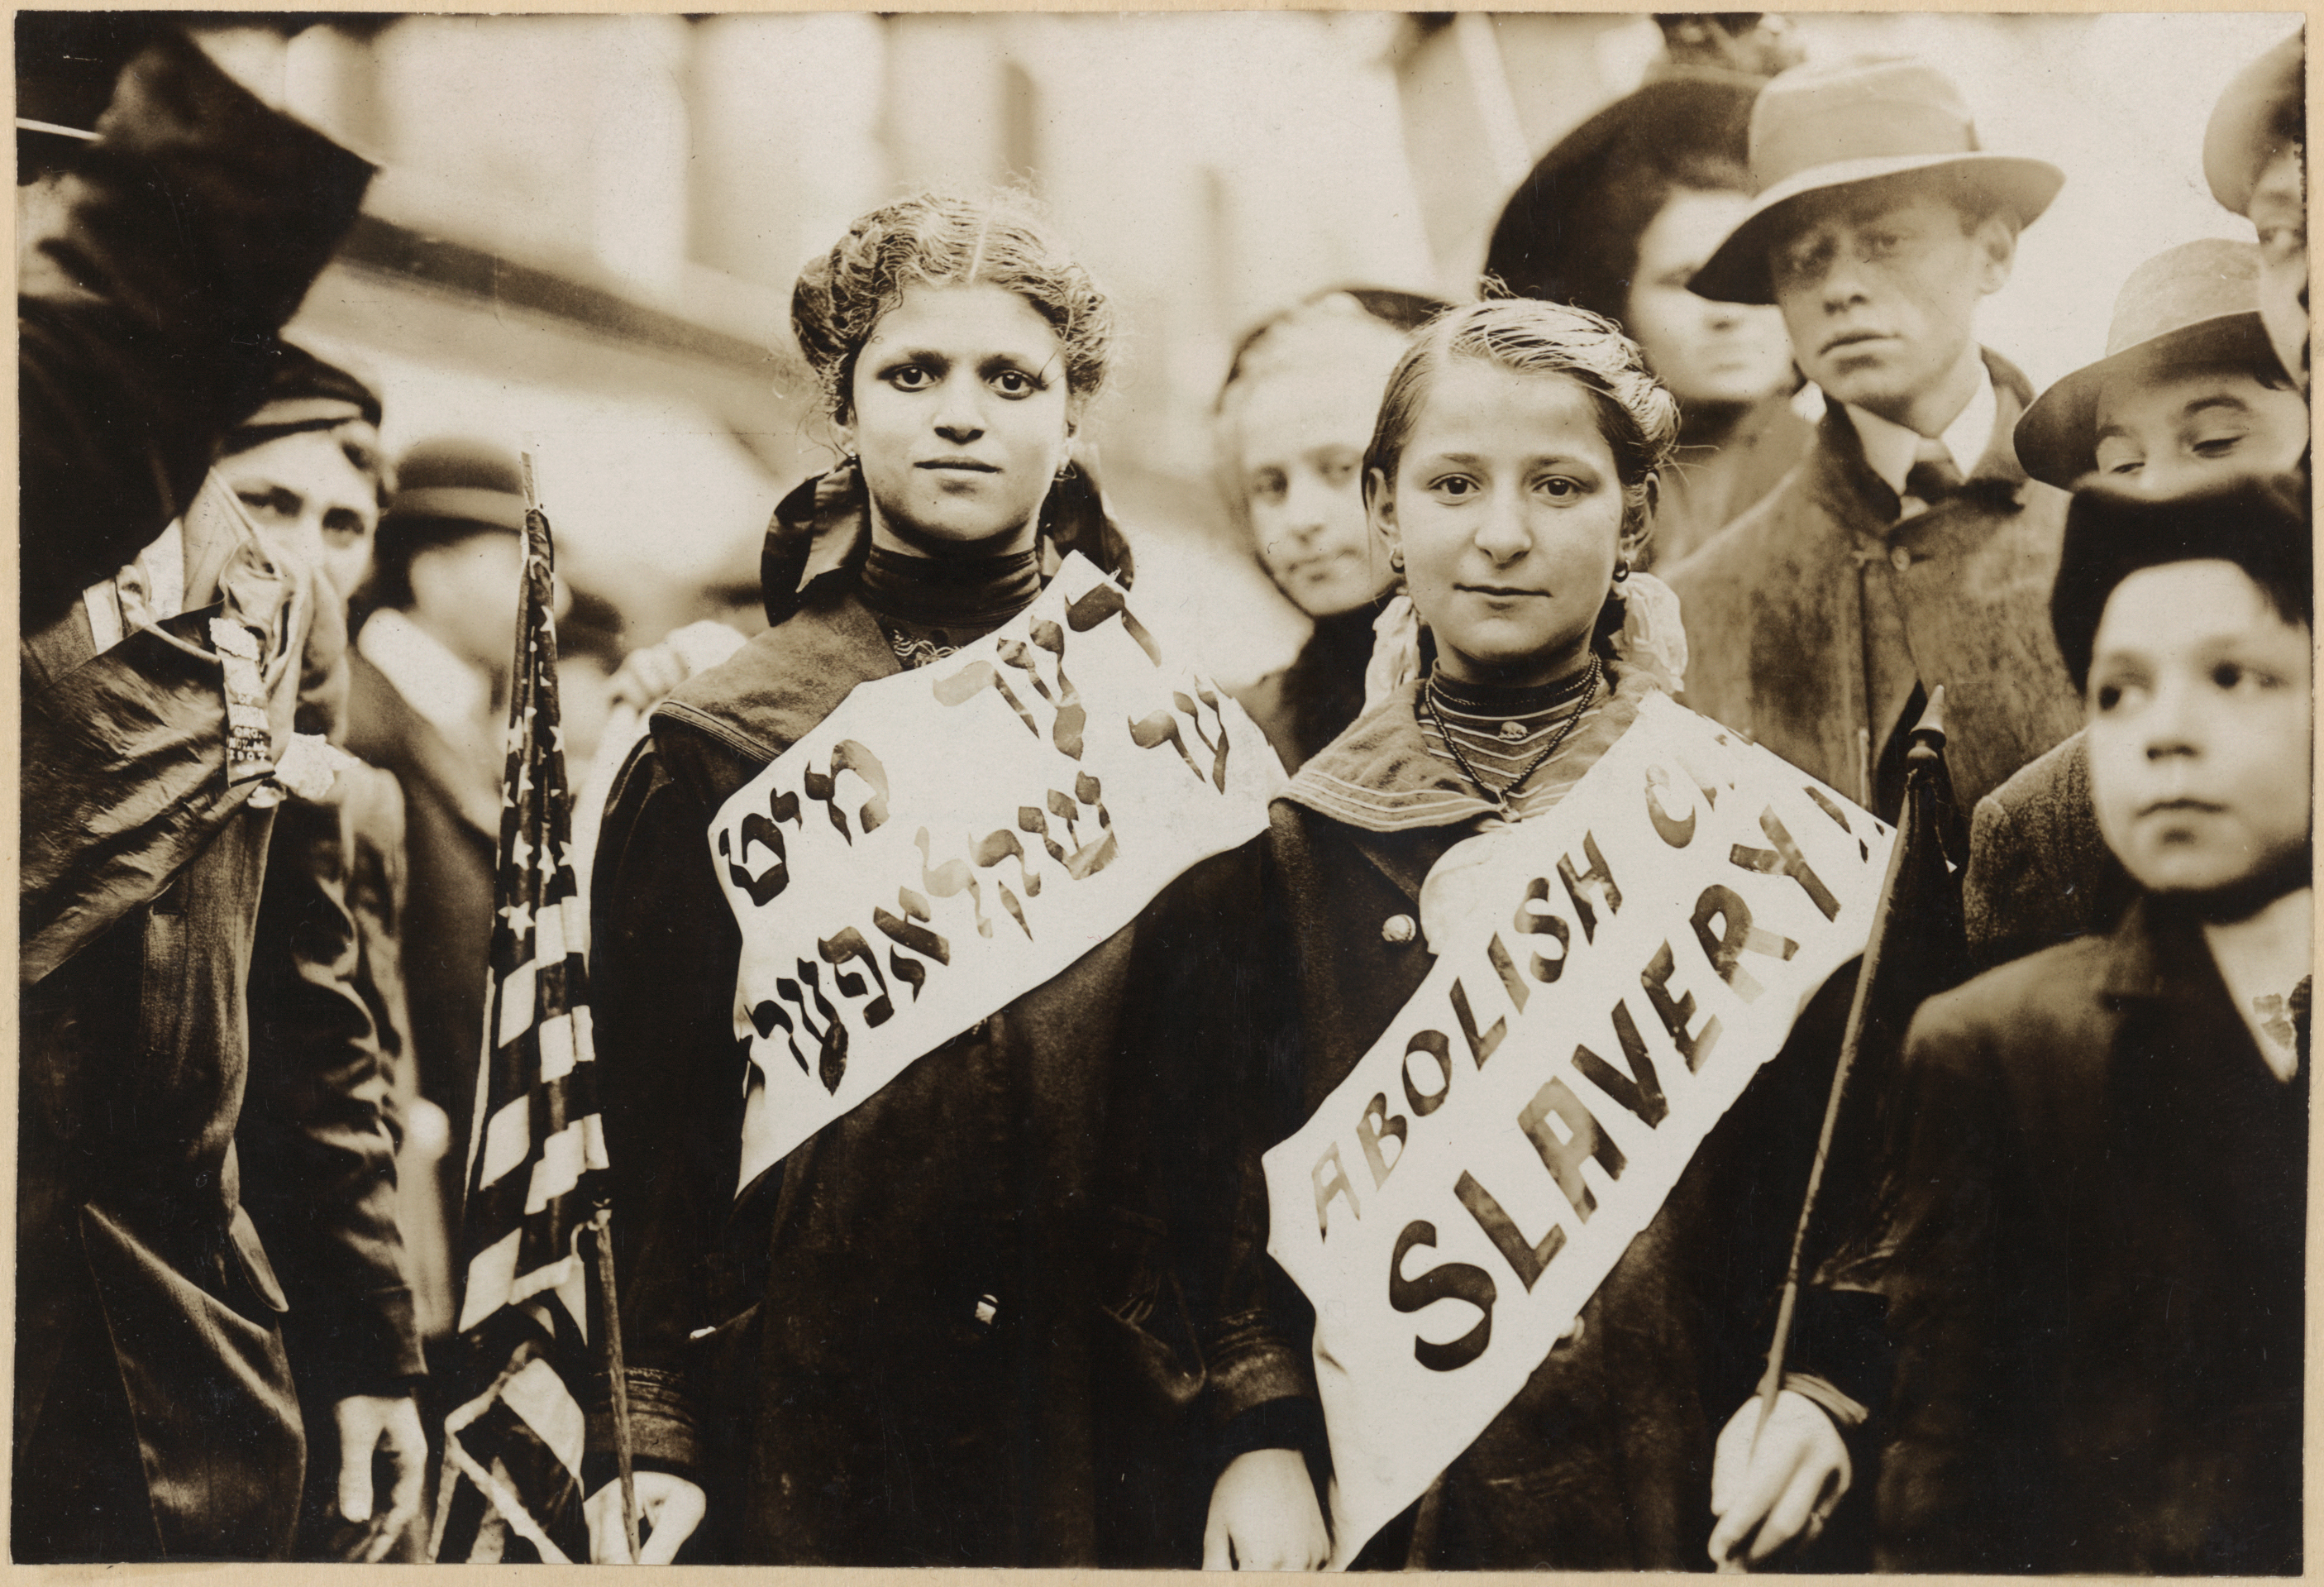 Young protesters against child slavery, with banners in English and Yiddish